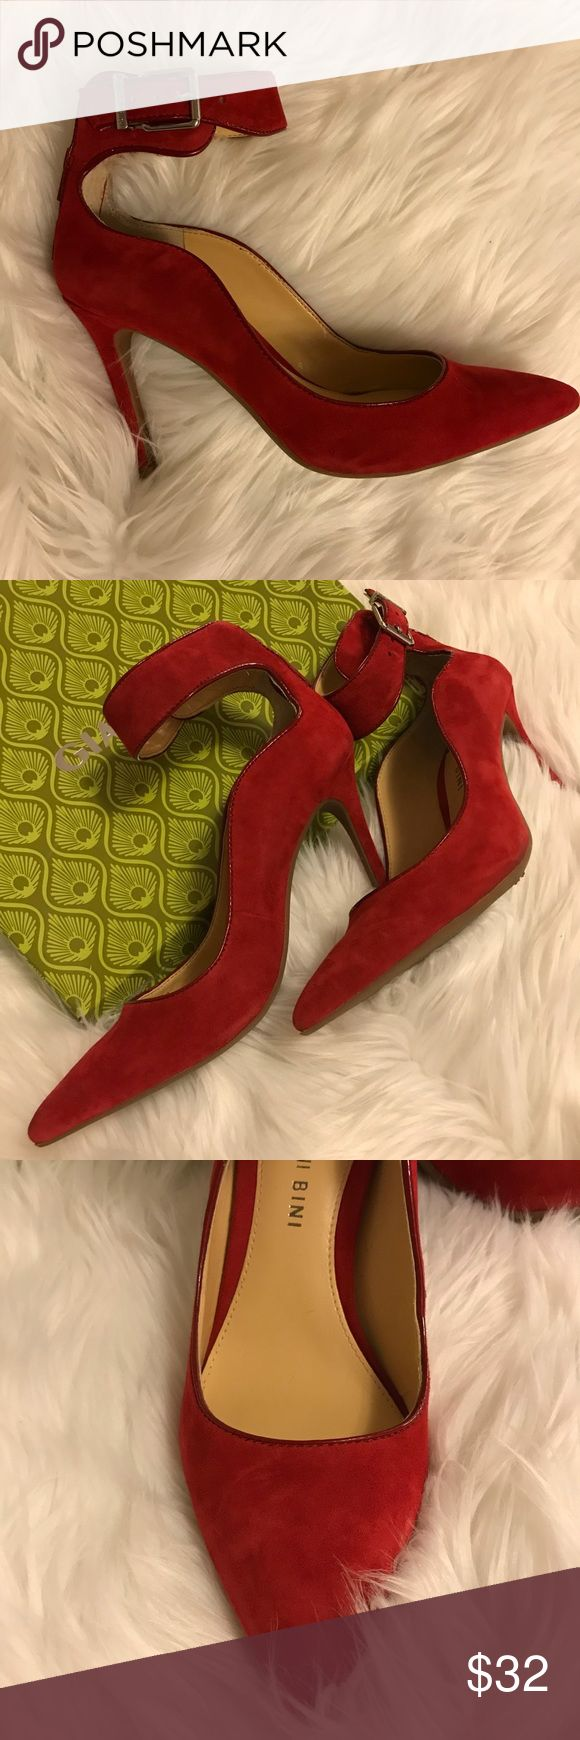 "Gianni Bini brand pumps Royal red; approx. 3"" heel; silver-toned hardware; worn twice; was bought with frayed inside-portion of left toe box (visible on last photo). It's time to retire her from my closet! May ship with original box. Gianni Bini Shoes Heels"